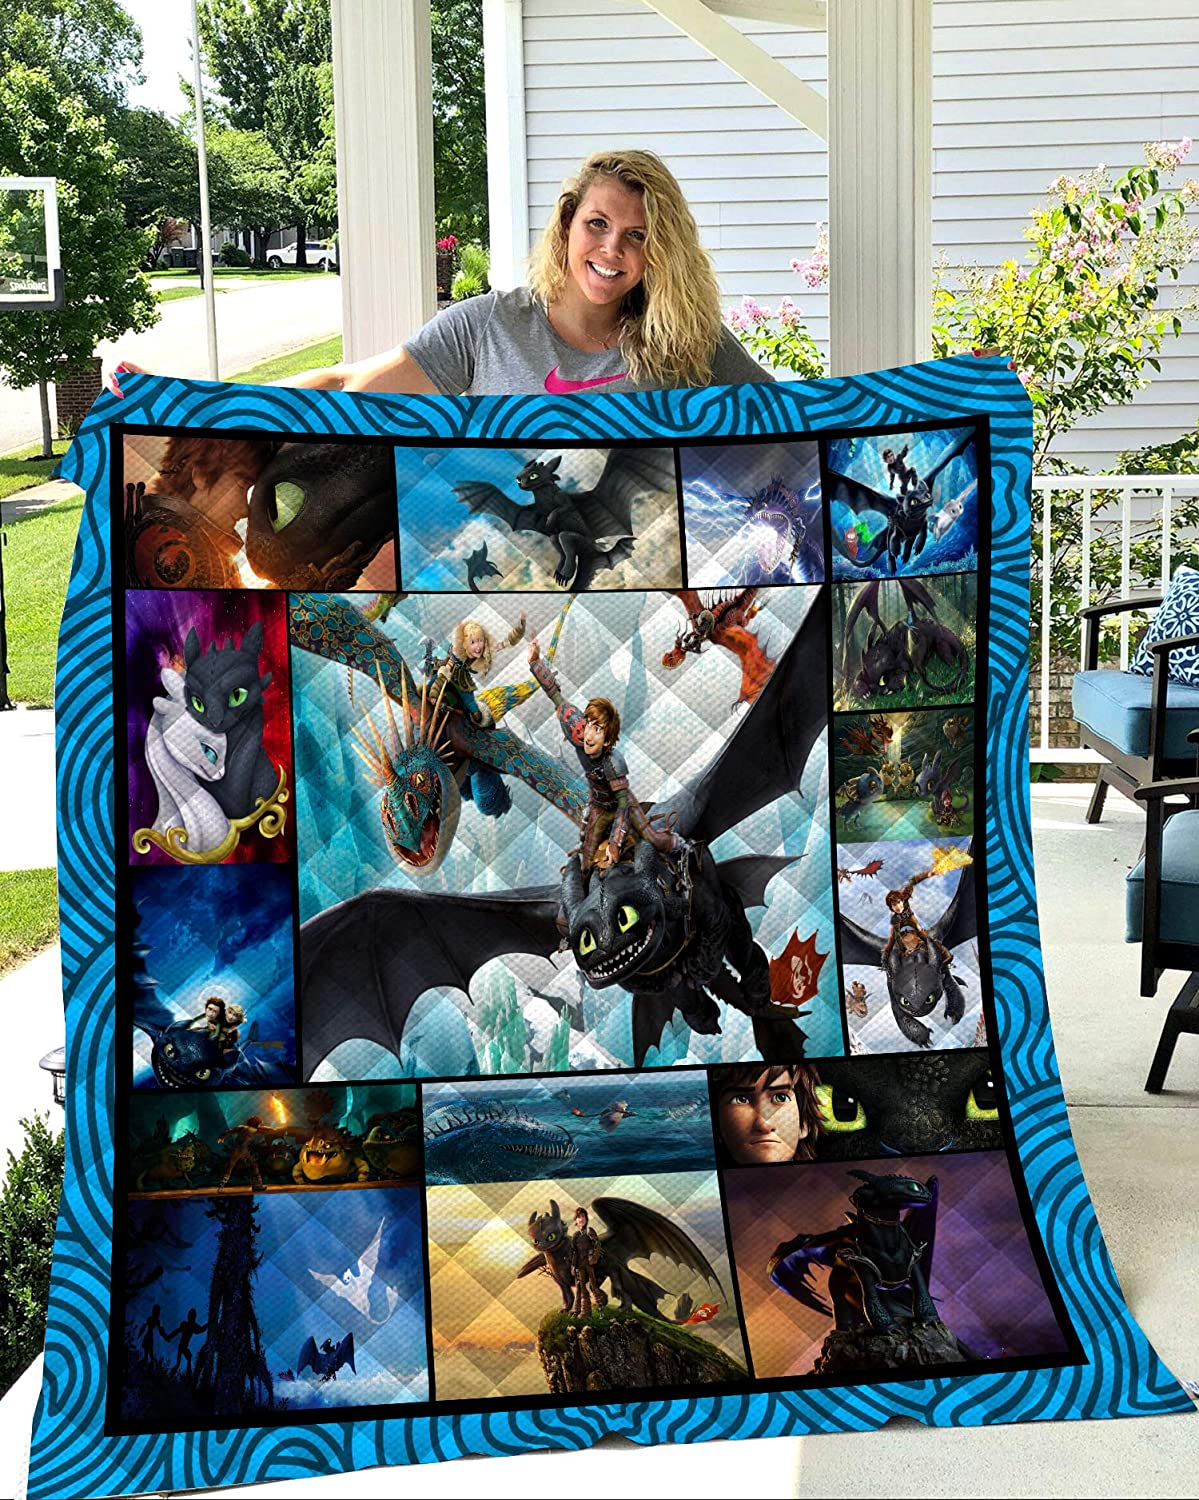 OWHO Summer 3D How to Train Your Dragon Quilt Blanket for Kids Adult Bedding Throw Warm Thin Blanket Cotton Quilt Queen King Size (Style 2,150cm200cm)